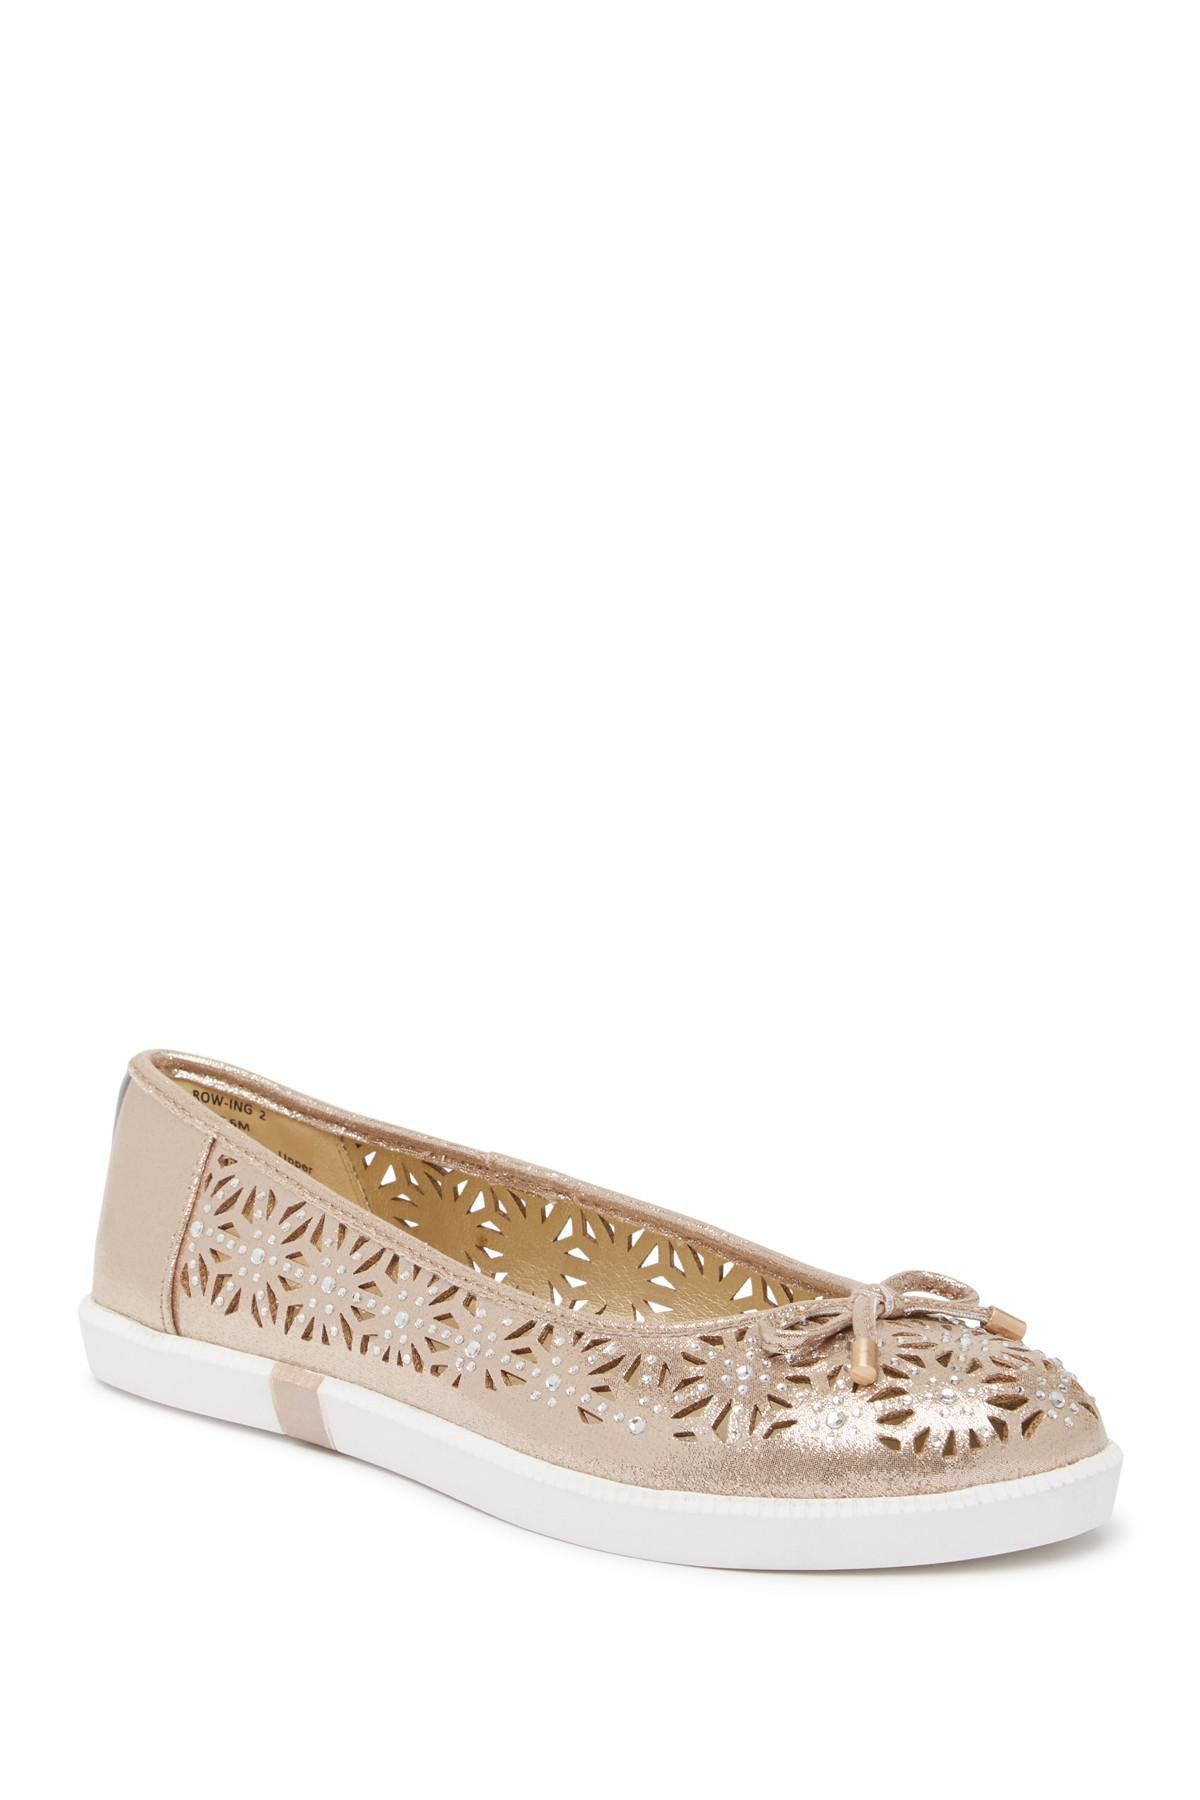 Row-Ing Jewels Kenneth Cole Reaction LcgjsMAiN